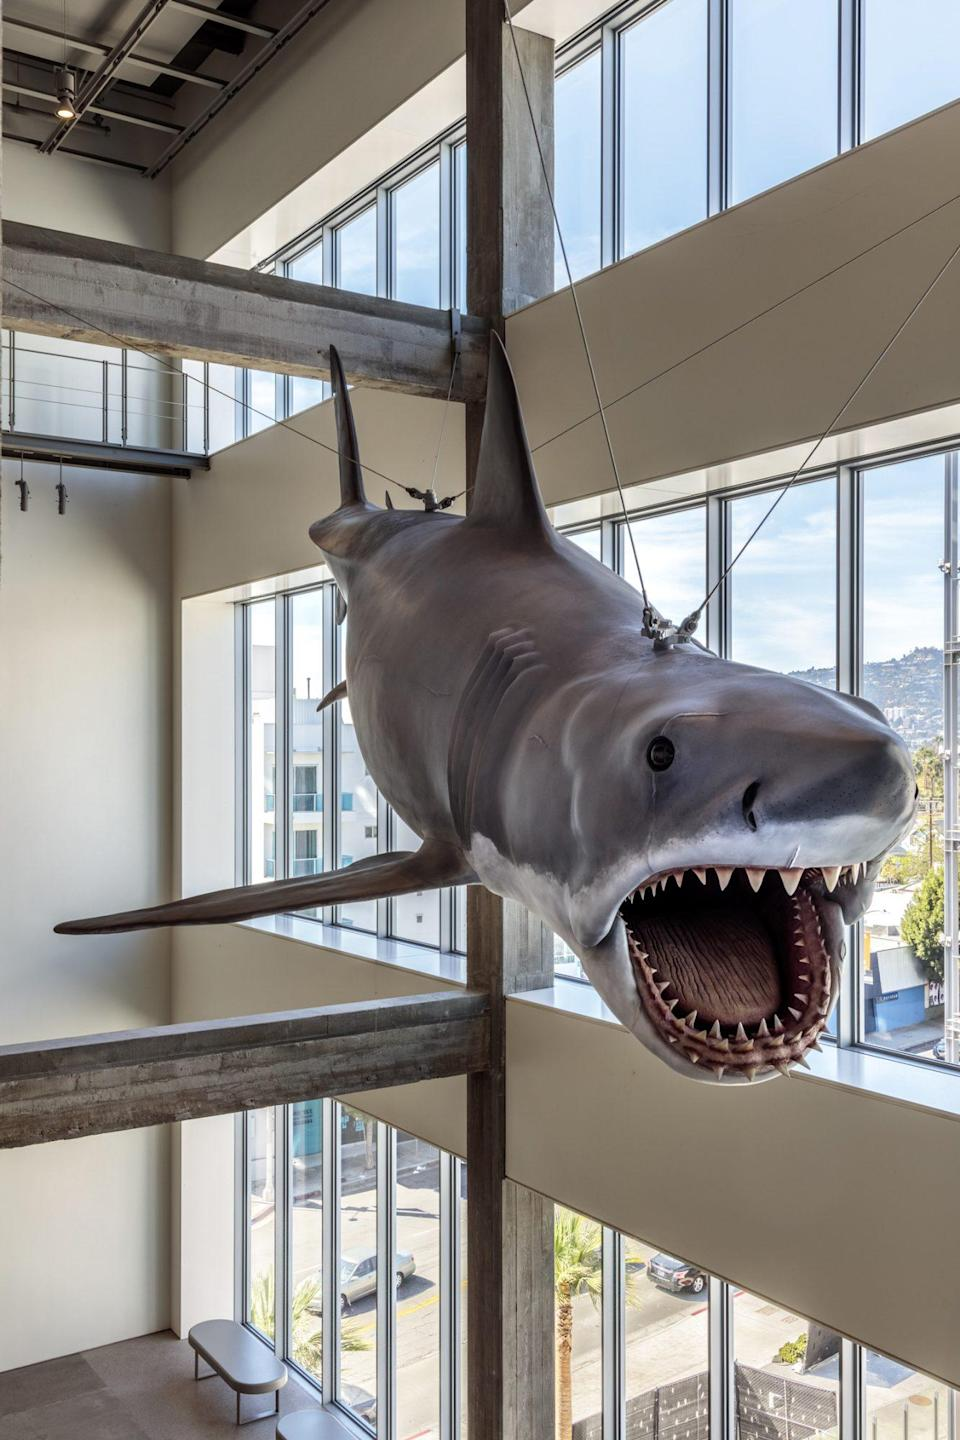 <p>The full-sized shark model from <em>Jaws</em> is suspended above a set of escalators, for an extra thrill. </p>